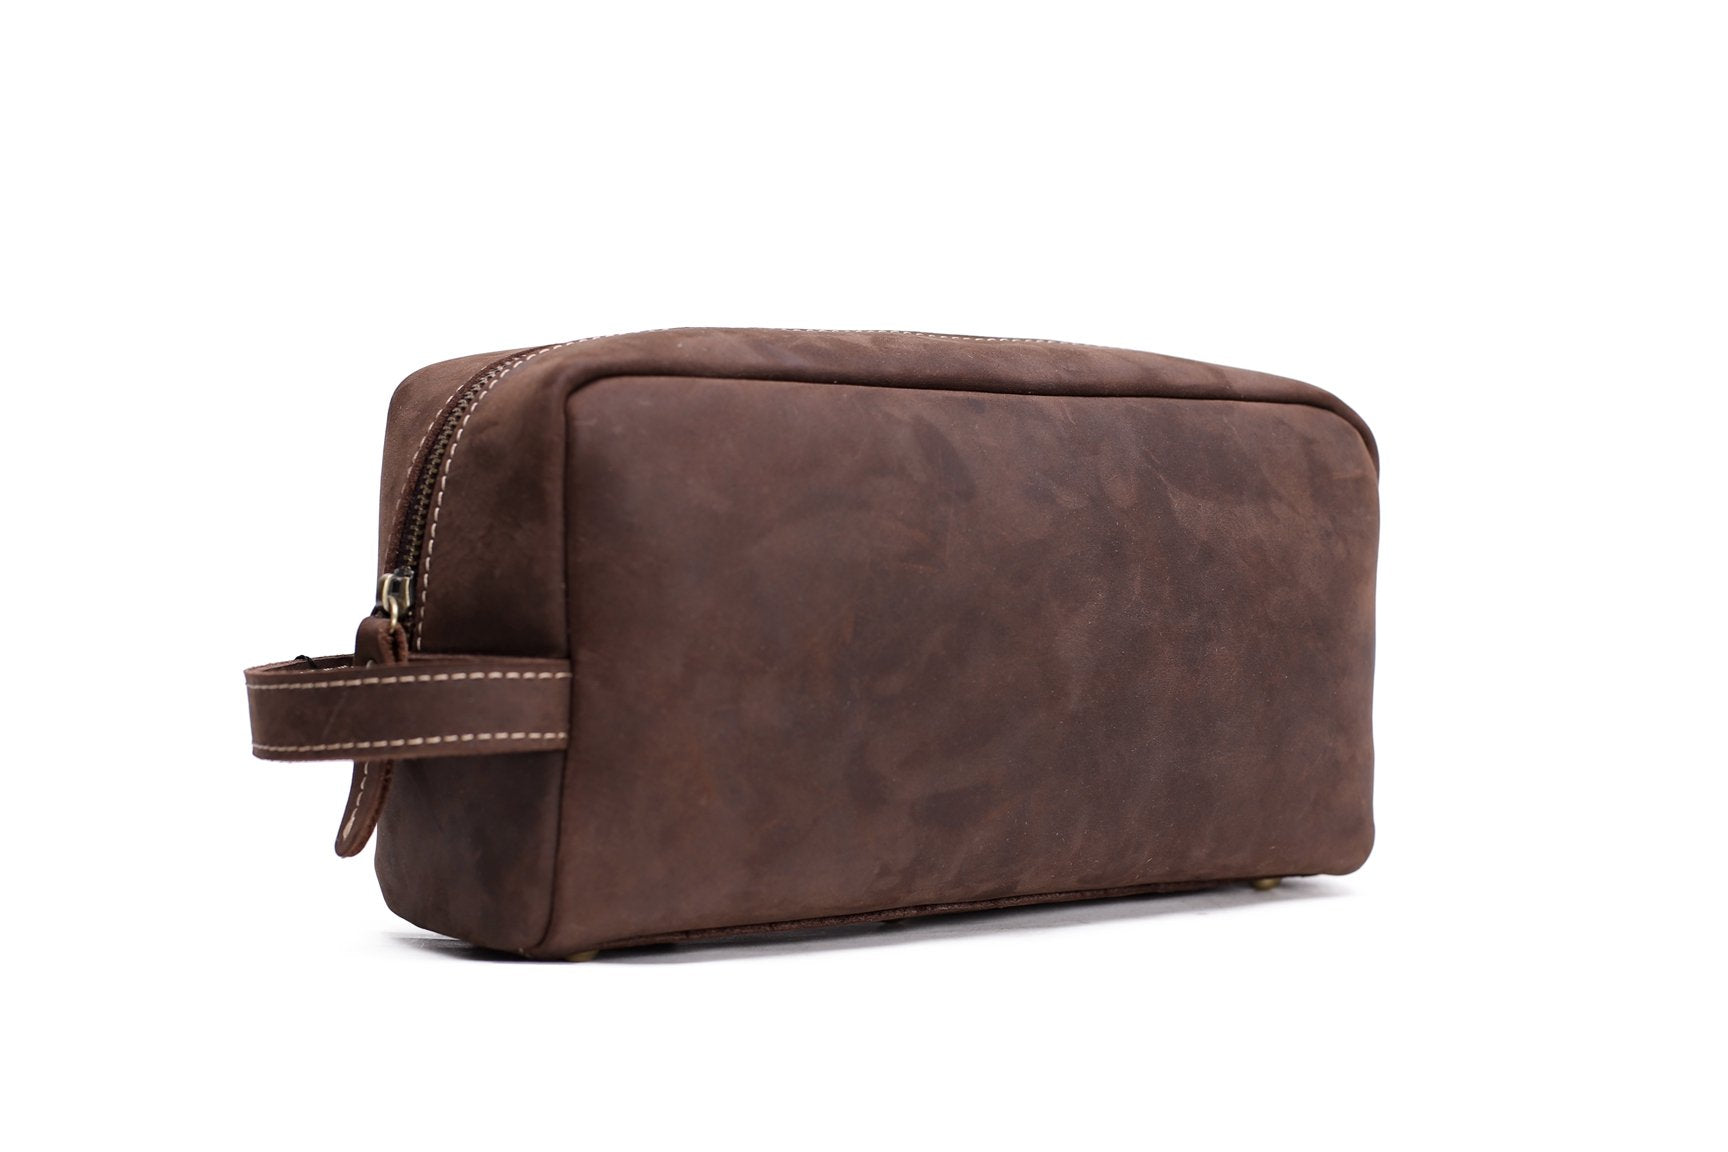 Handmade Vintage Leather Men's Clutch, Travel Pouch - Blue Sebe